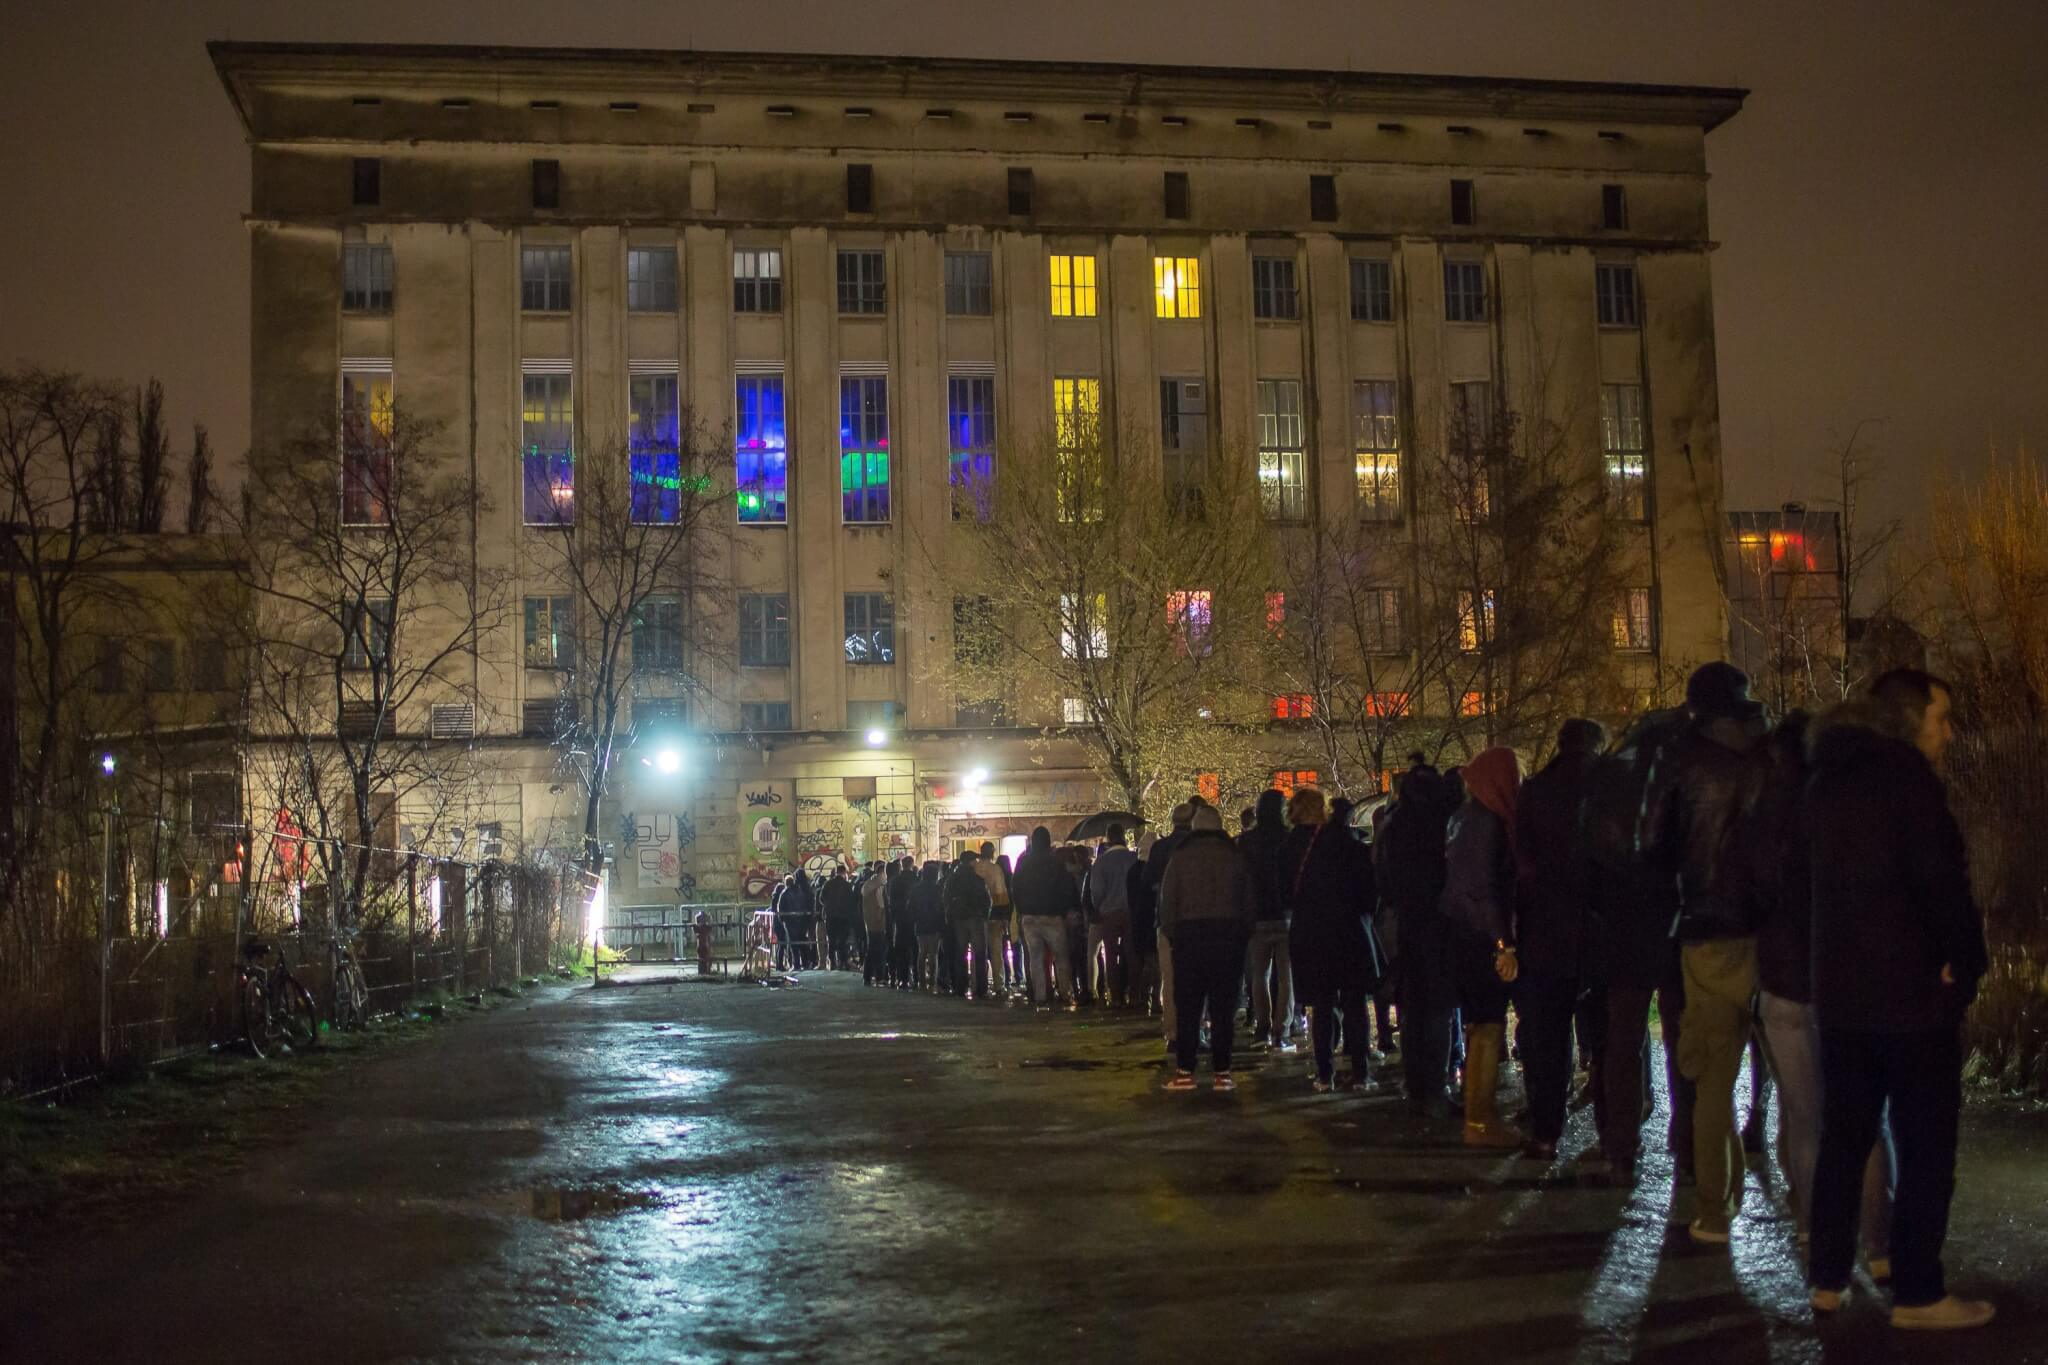 Berghain Boycott Group Forms Over New Entry Policies